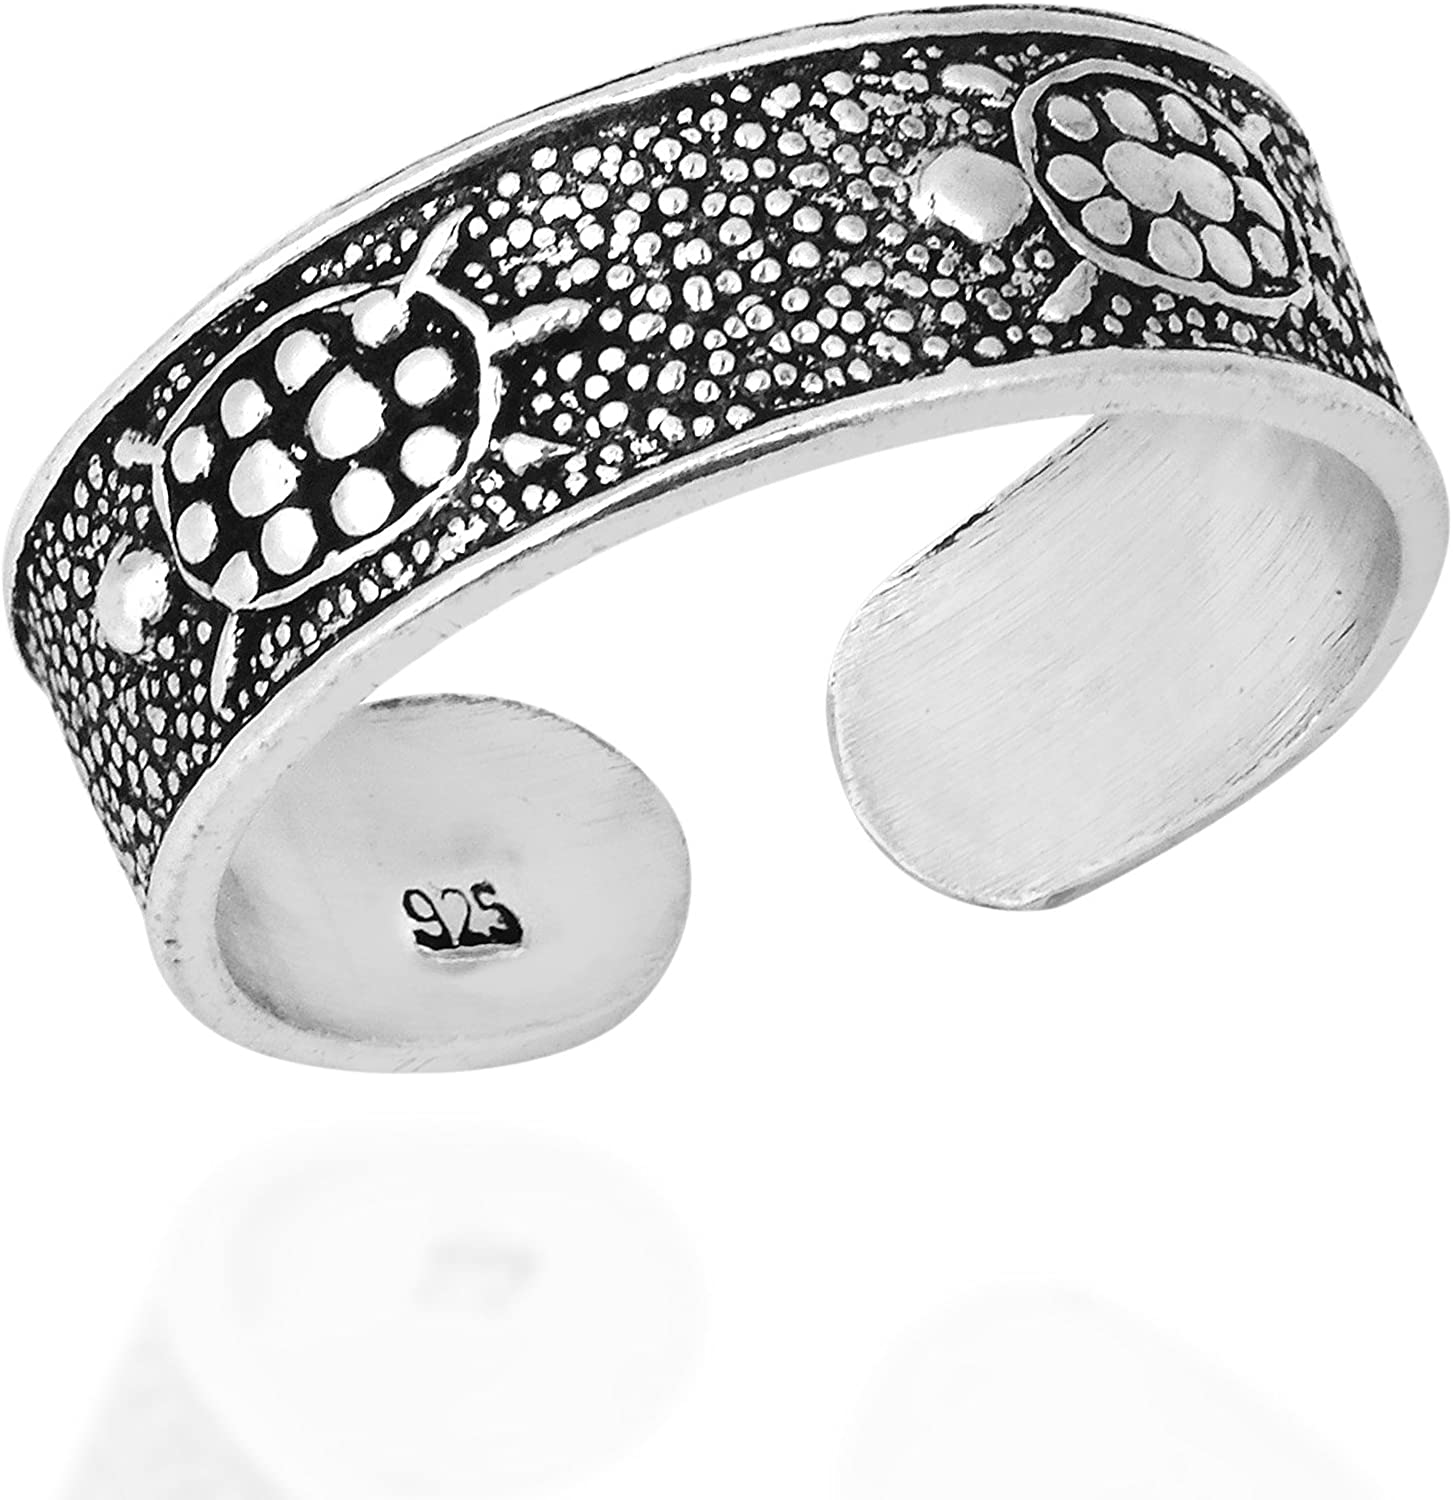 AeraVida Mythic Marine Turtle Band .925 Sterling Silver Toe Ring or Pinky Ring